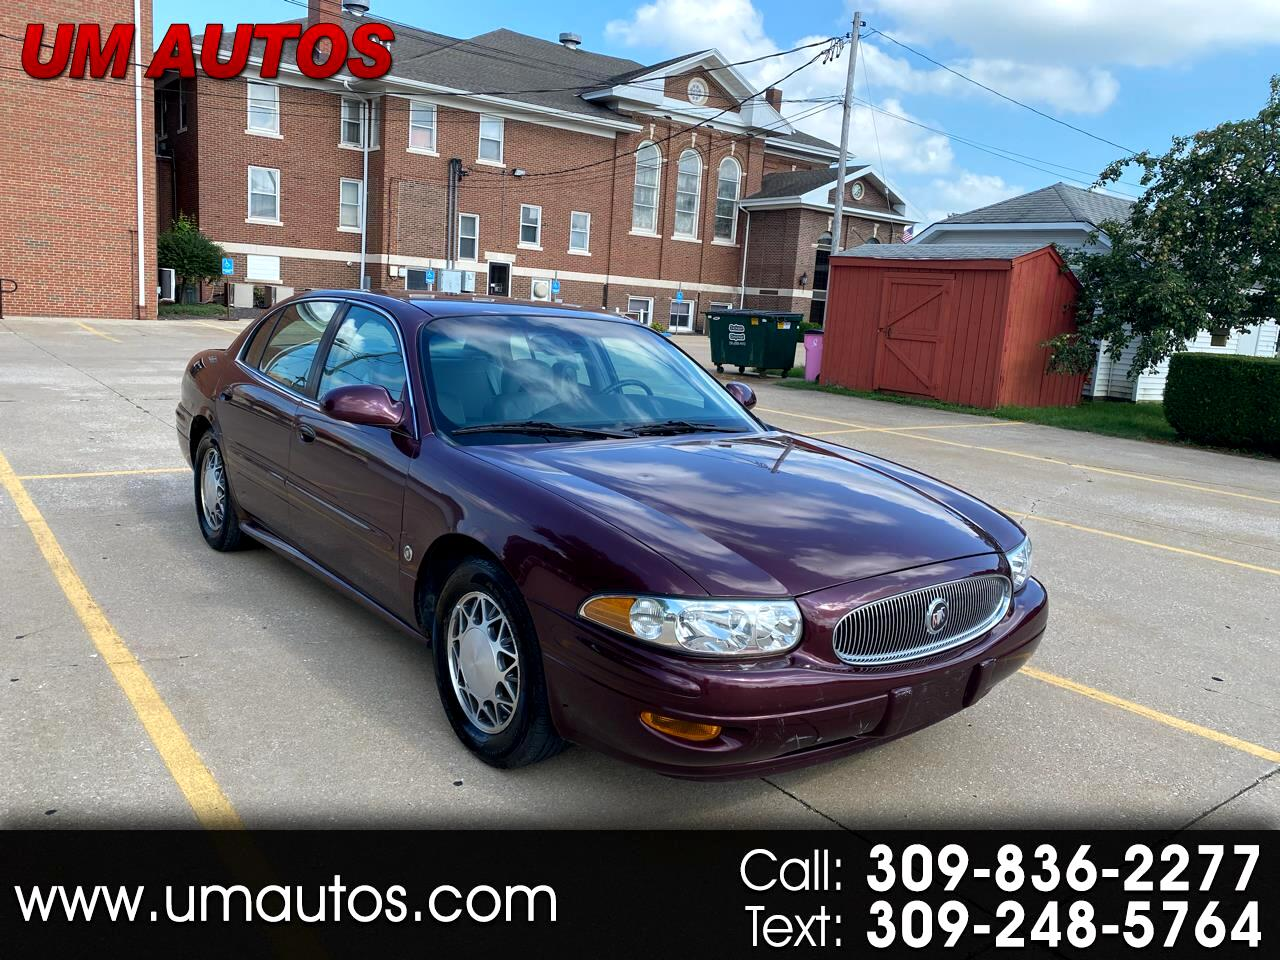 used 2004 buick lesabre 4dr sedan limited for sale in macomb il 61455 um autos um autos